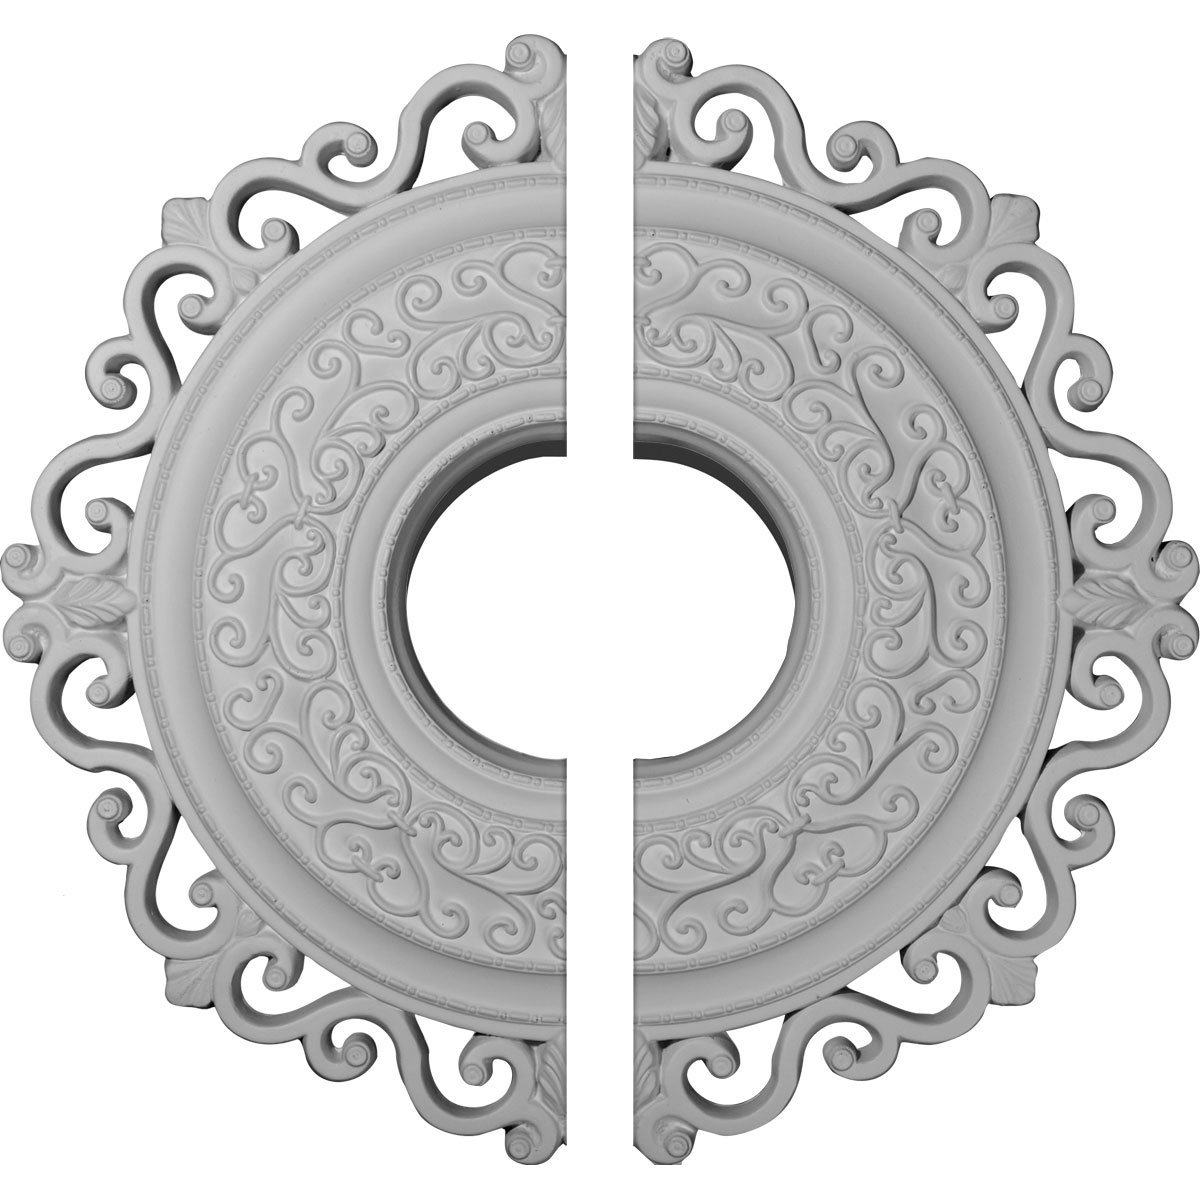 Ekena Millwork CM22OR2 22''OD x 6 1/2''ID x 1 3/4''P Orrington Ceiling Medallion, Fits Canopies up to 6-1/4'', 2 Piece